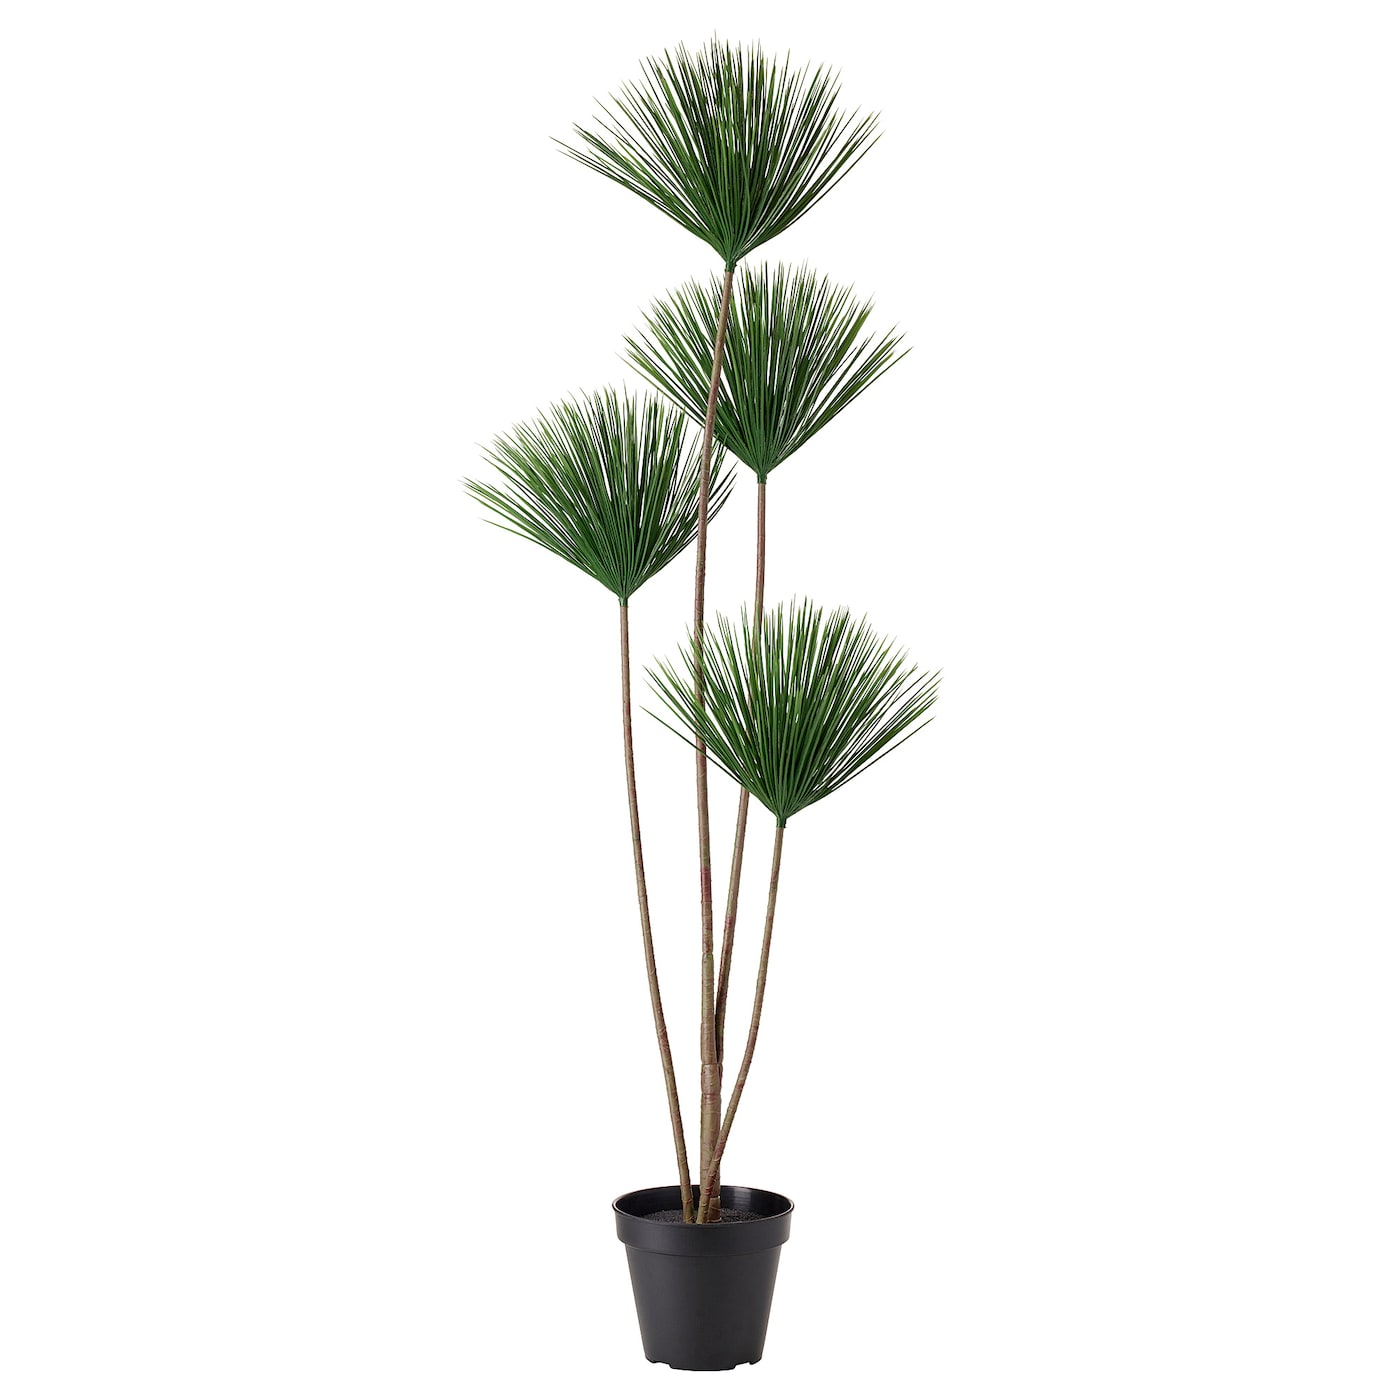 Fejka plante artificielle en pot int rieur ext rieur for Plante verte artificielle ikea